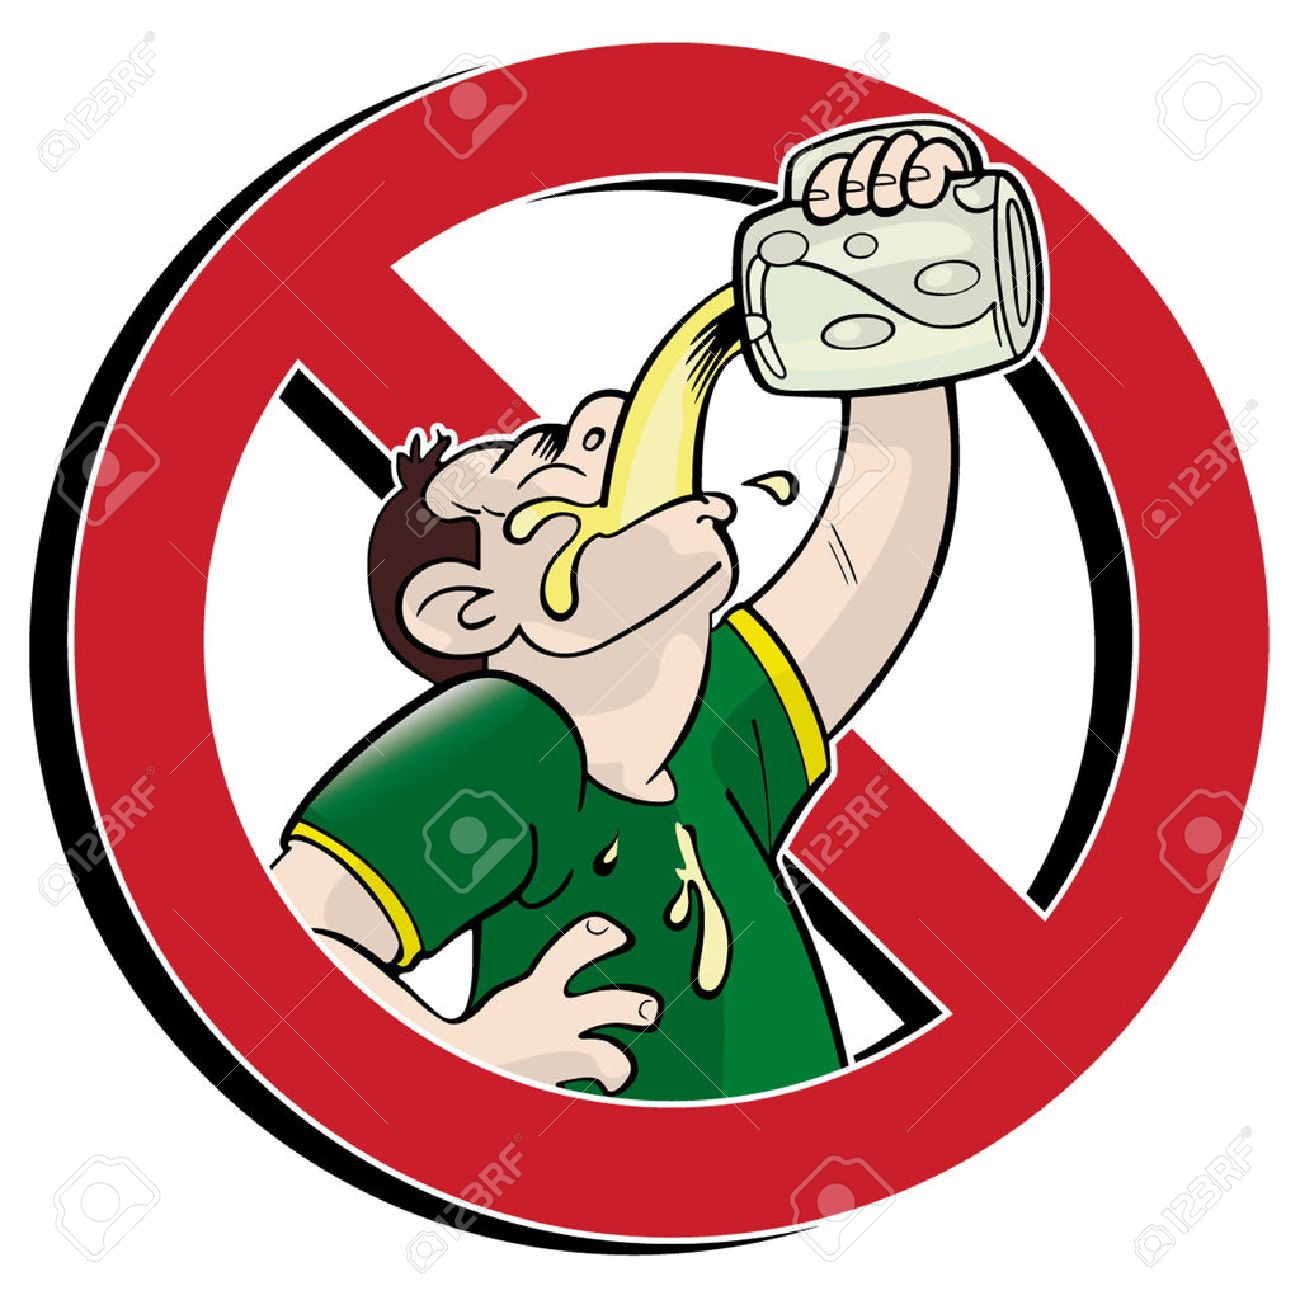 No drinking prohibition sign - 5029327